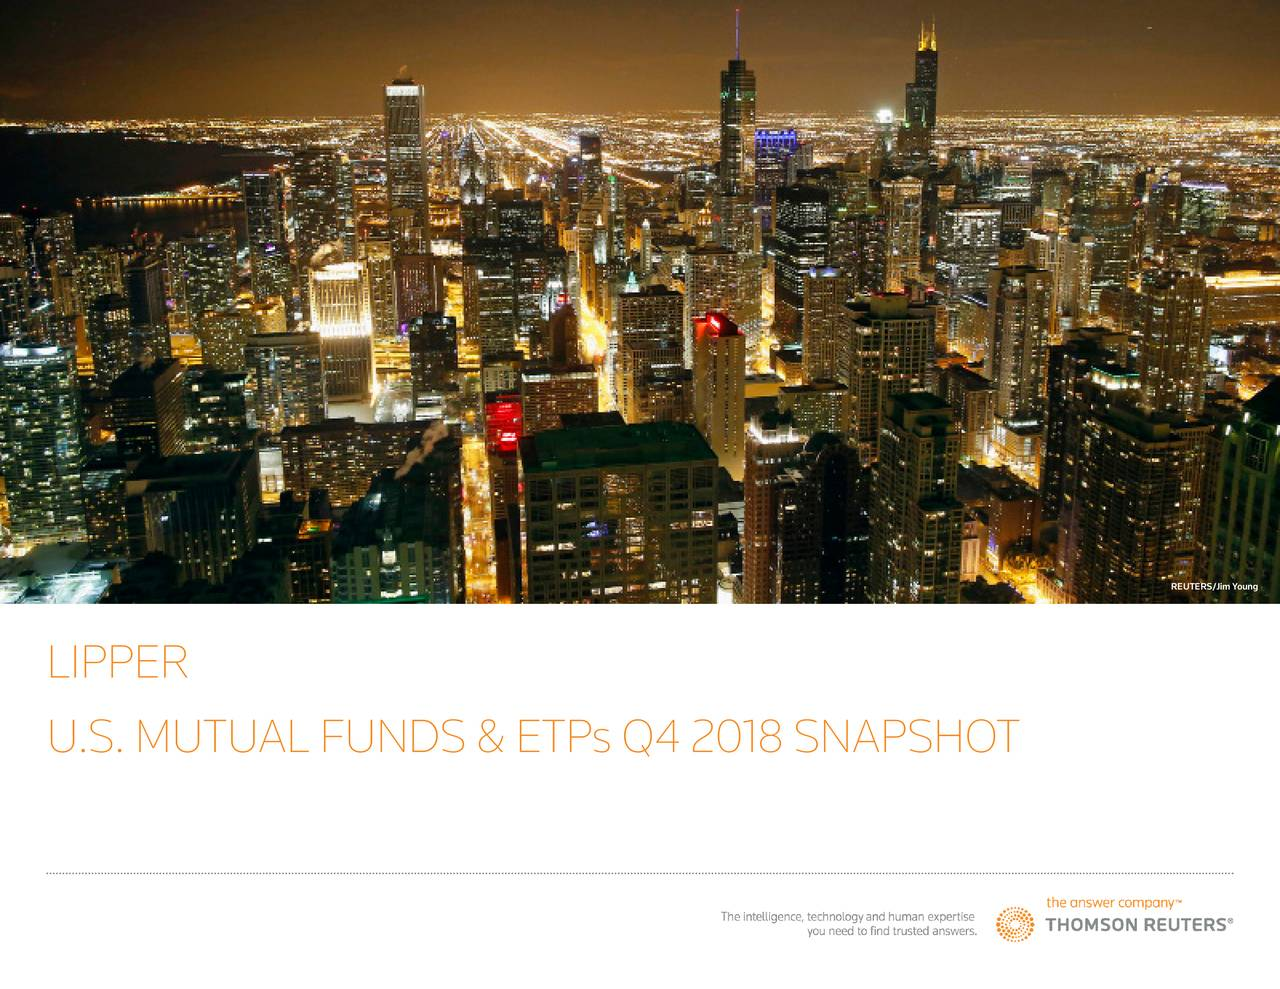 LIPPER U.S. MUTUAL FUNDS & ETP s Q4 2018 SNAPSHOT